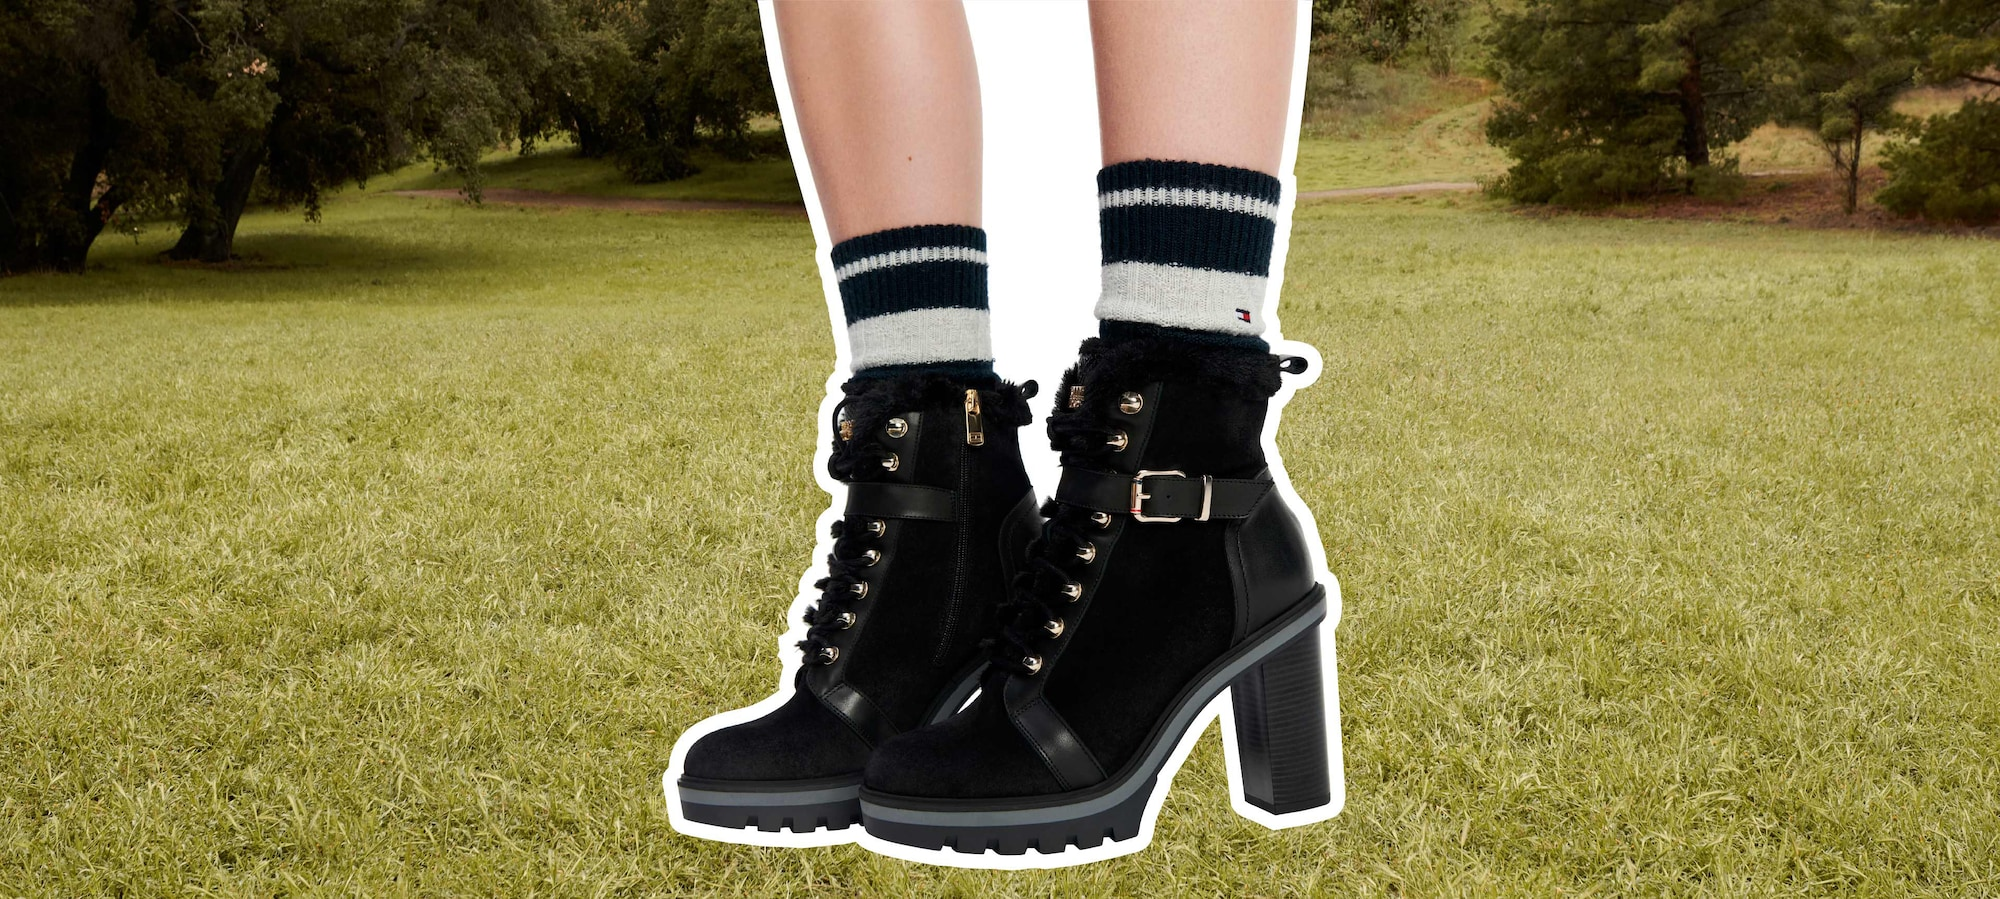 New Boots by Tommy Hilfiger